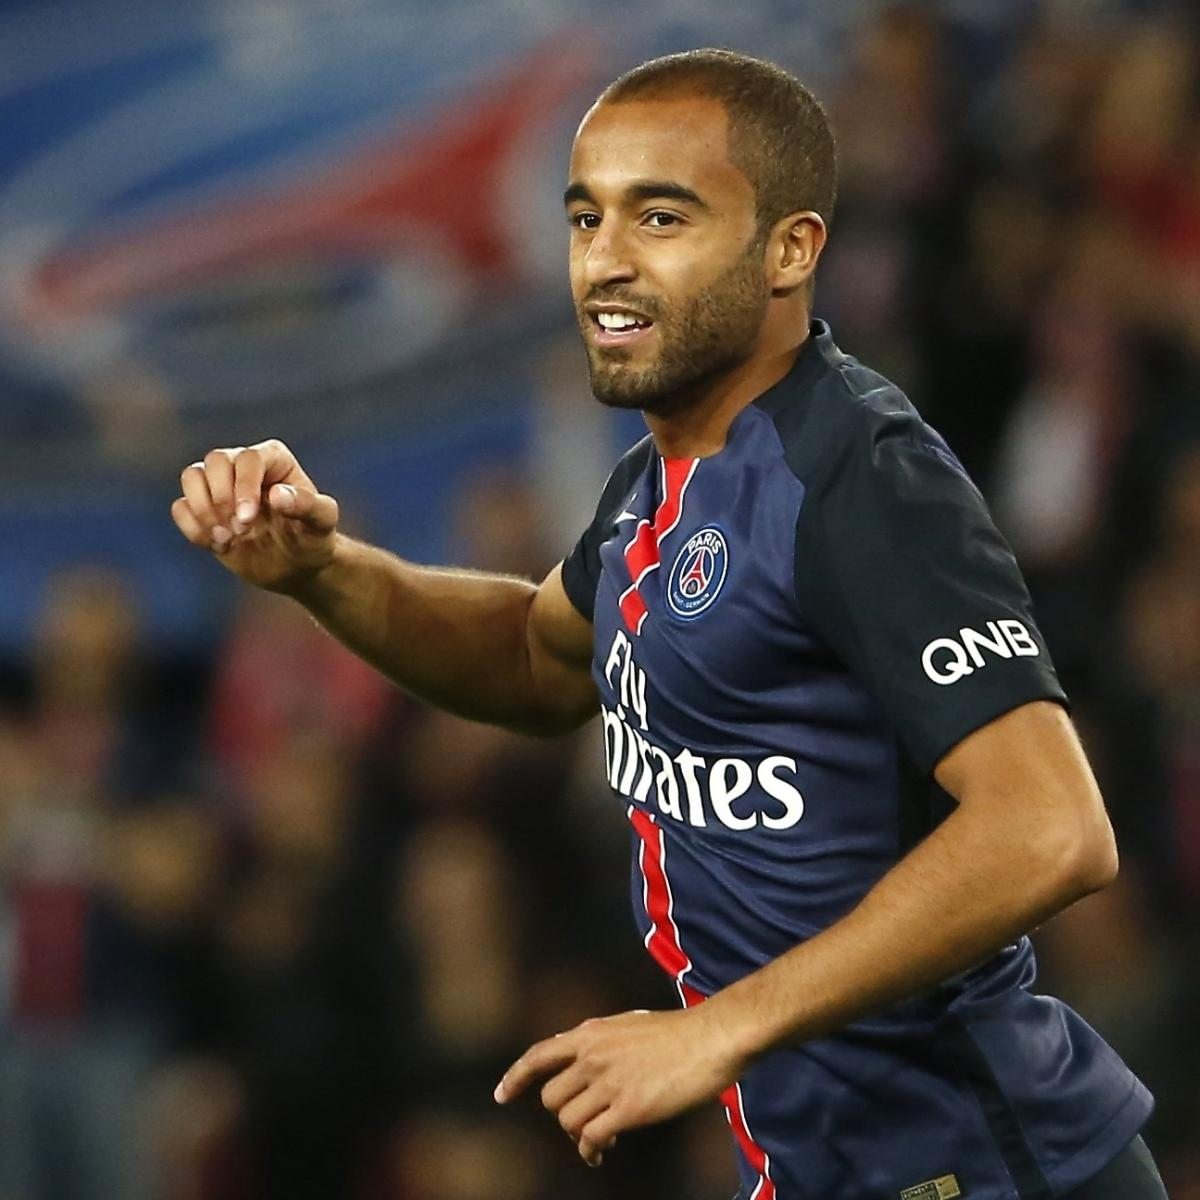 Lucas Moura To Psg Price: Should PSG Stick Or Twist With Lucas Moura?